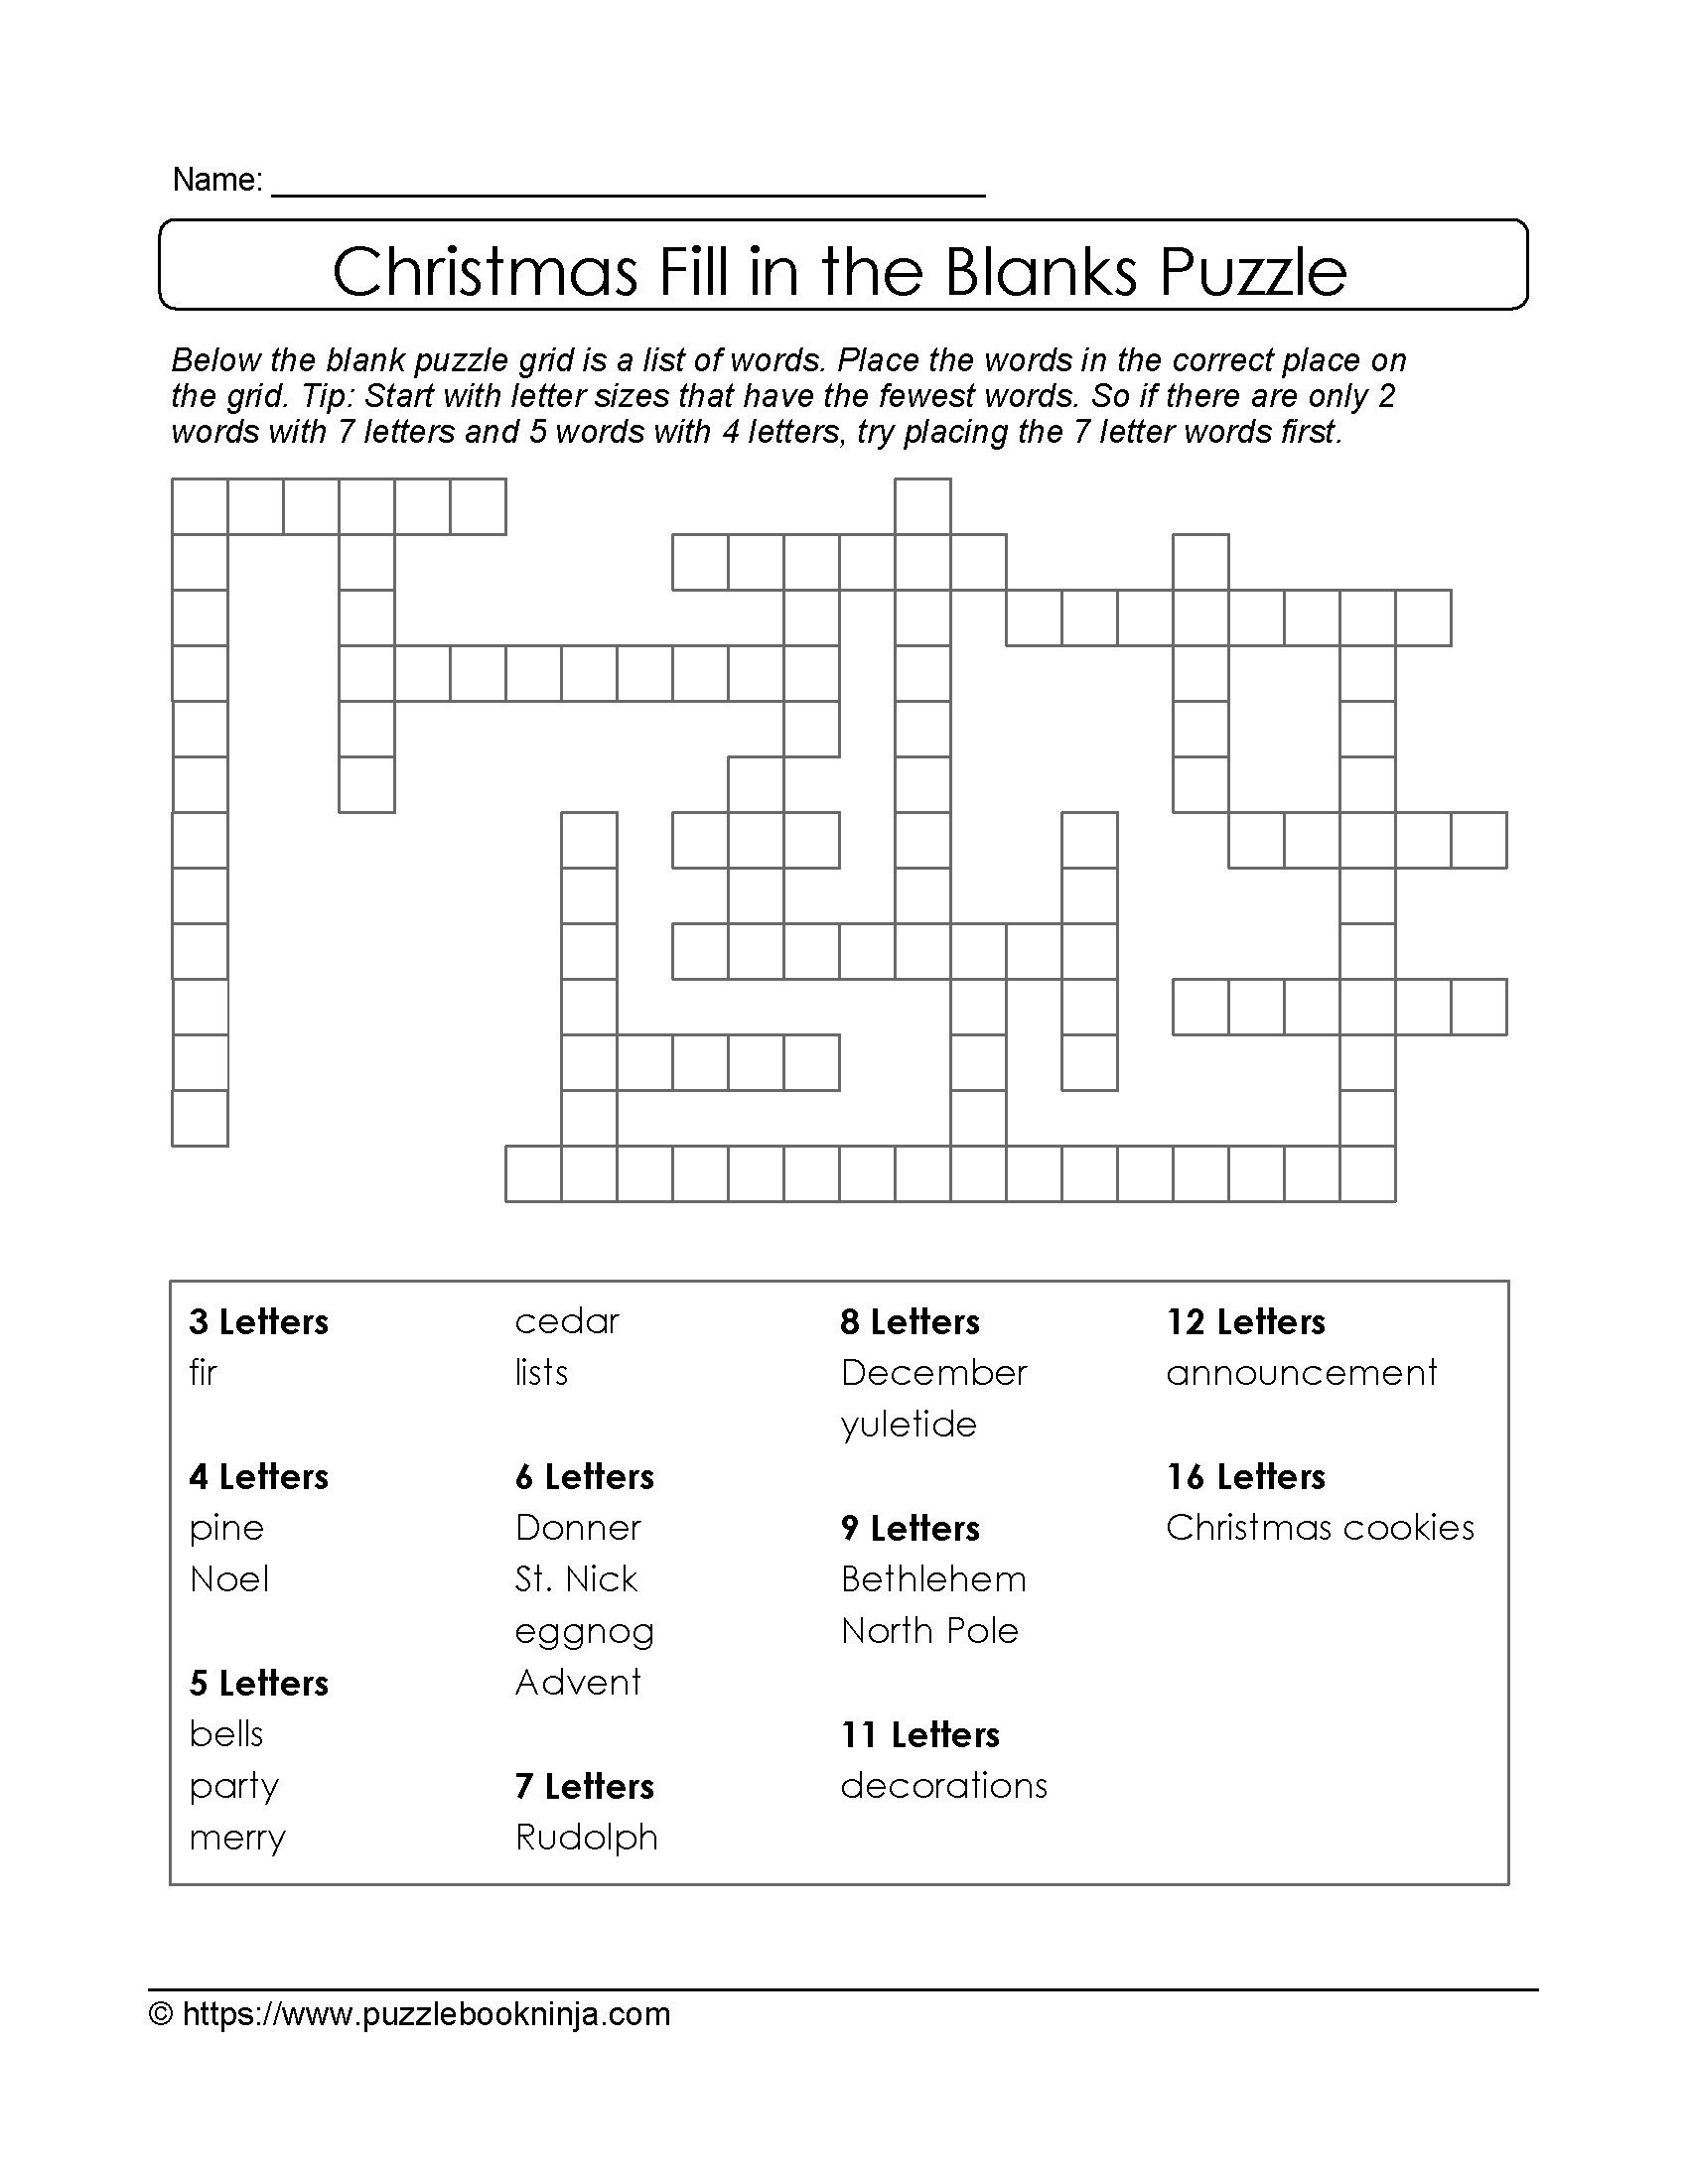 Christmas Printable Puzzle. Free Fill In The Blanks. | Christmas - Printable Blank Crossword Grid